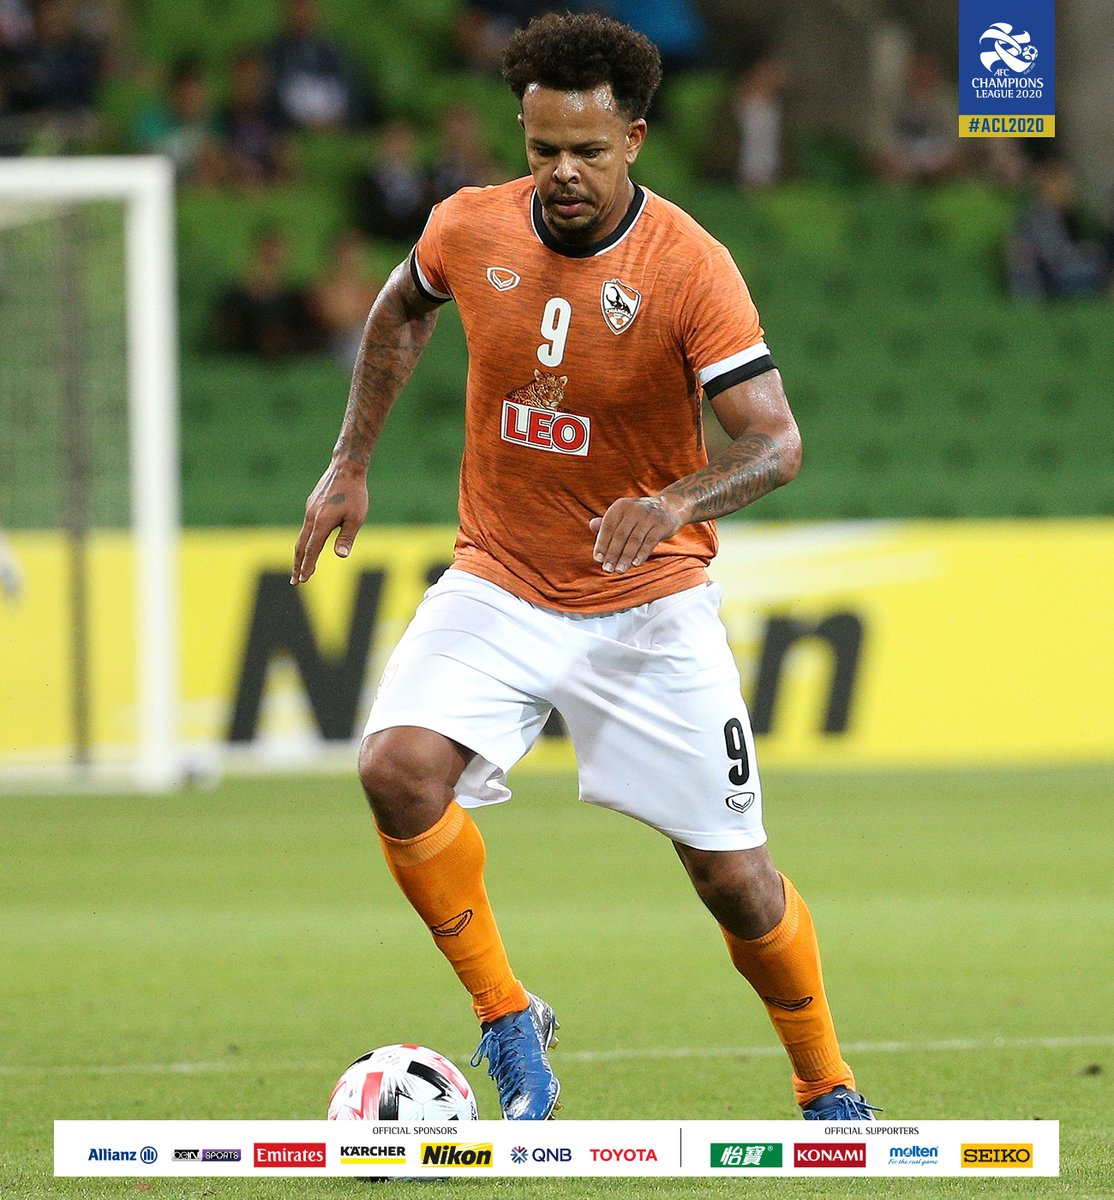 🔹 Melbourne haven't scored more than 1⃣ goal in a game across their last two ACL campaigns (1W 1D 8L).  🔹 Chiangrai have yet to hold a clean sheet in ACL.  🔹 Melbourne have made 22 dribbles per game, the second-most of any team in #ACL2020 behind Vissel Kobe (22.5).  #CRUvMVC